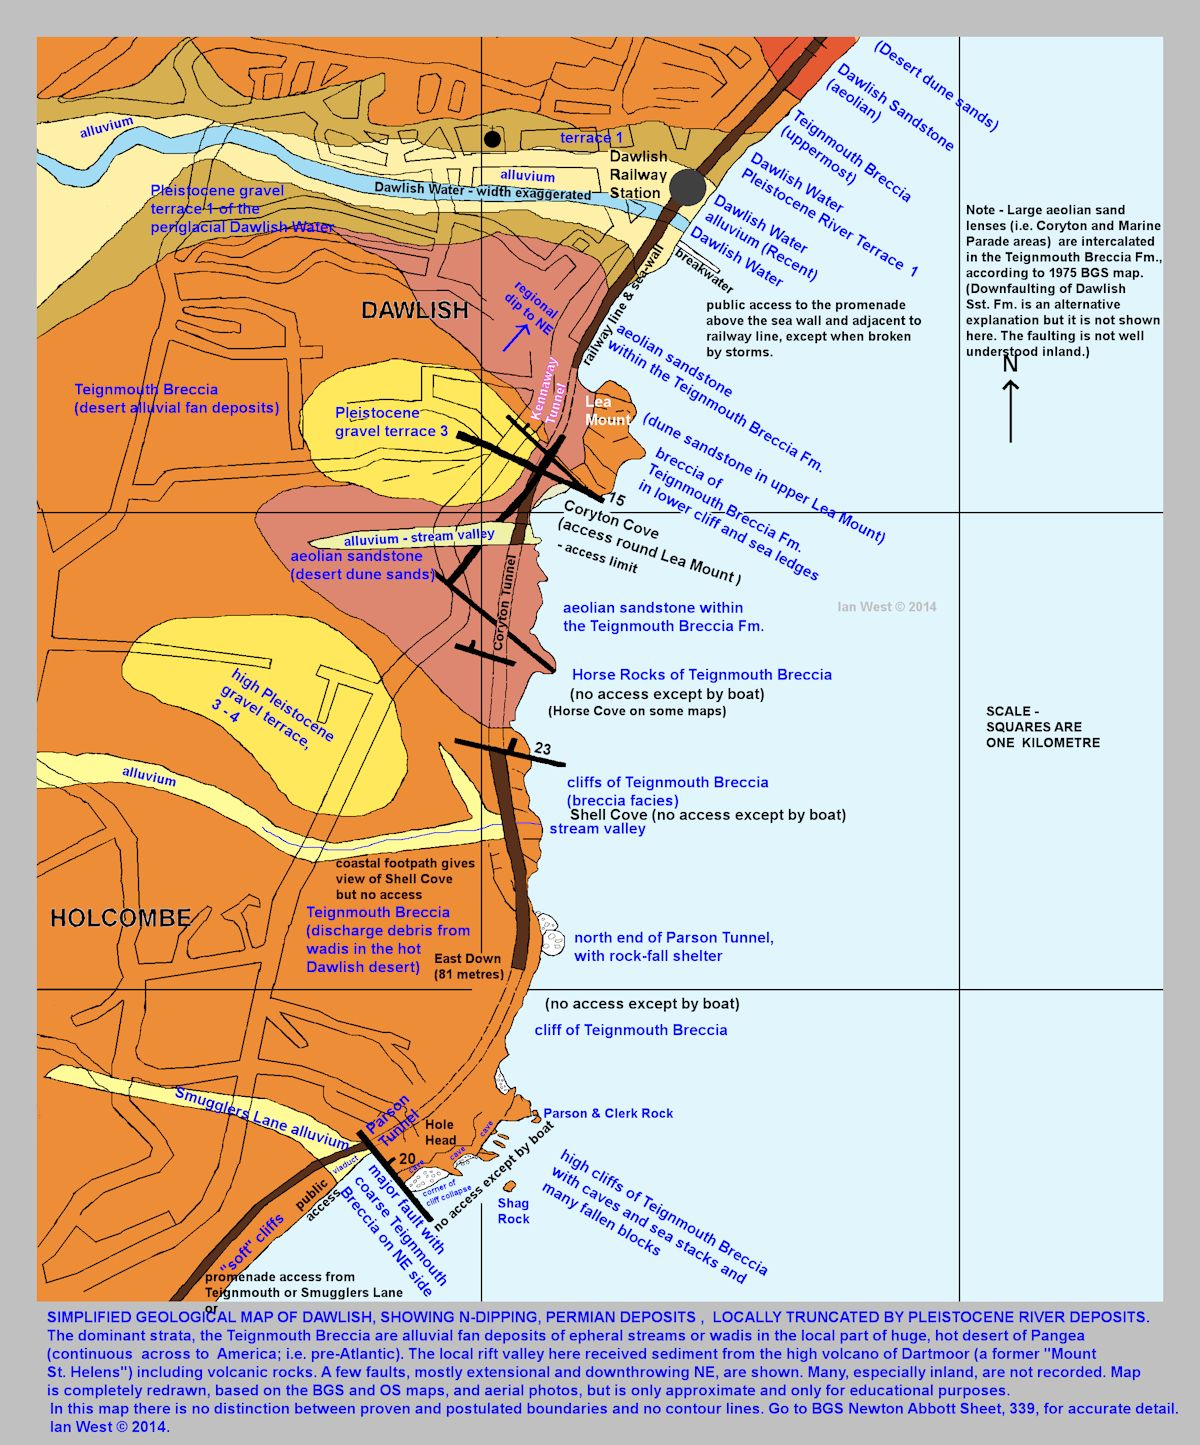 A simplified and redrawn geological map, but on a larger scale, showing faults and other details around the Dawlish area, Devon